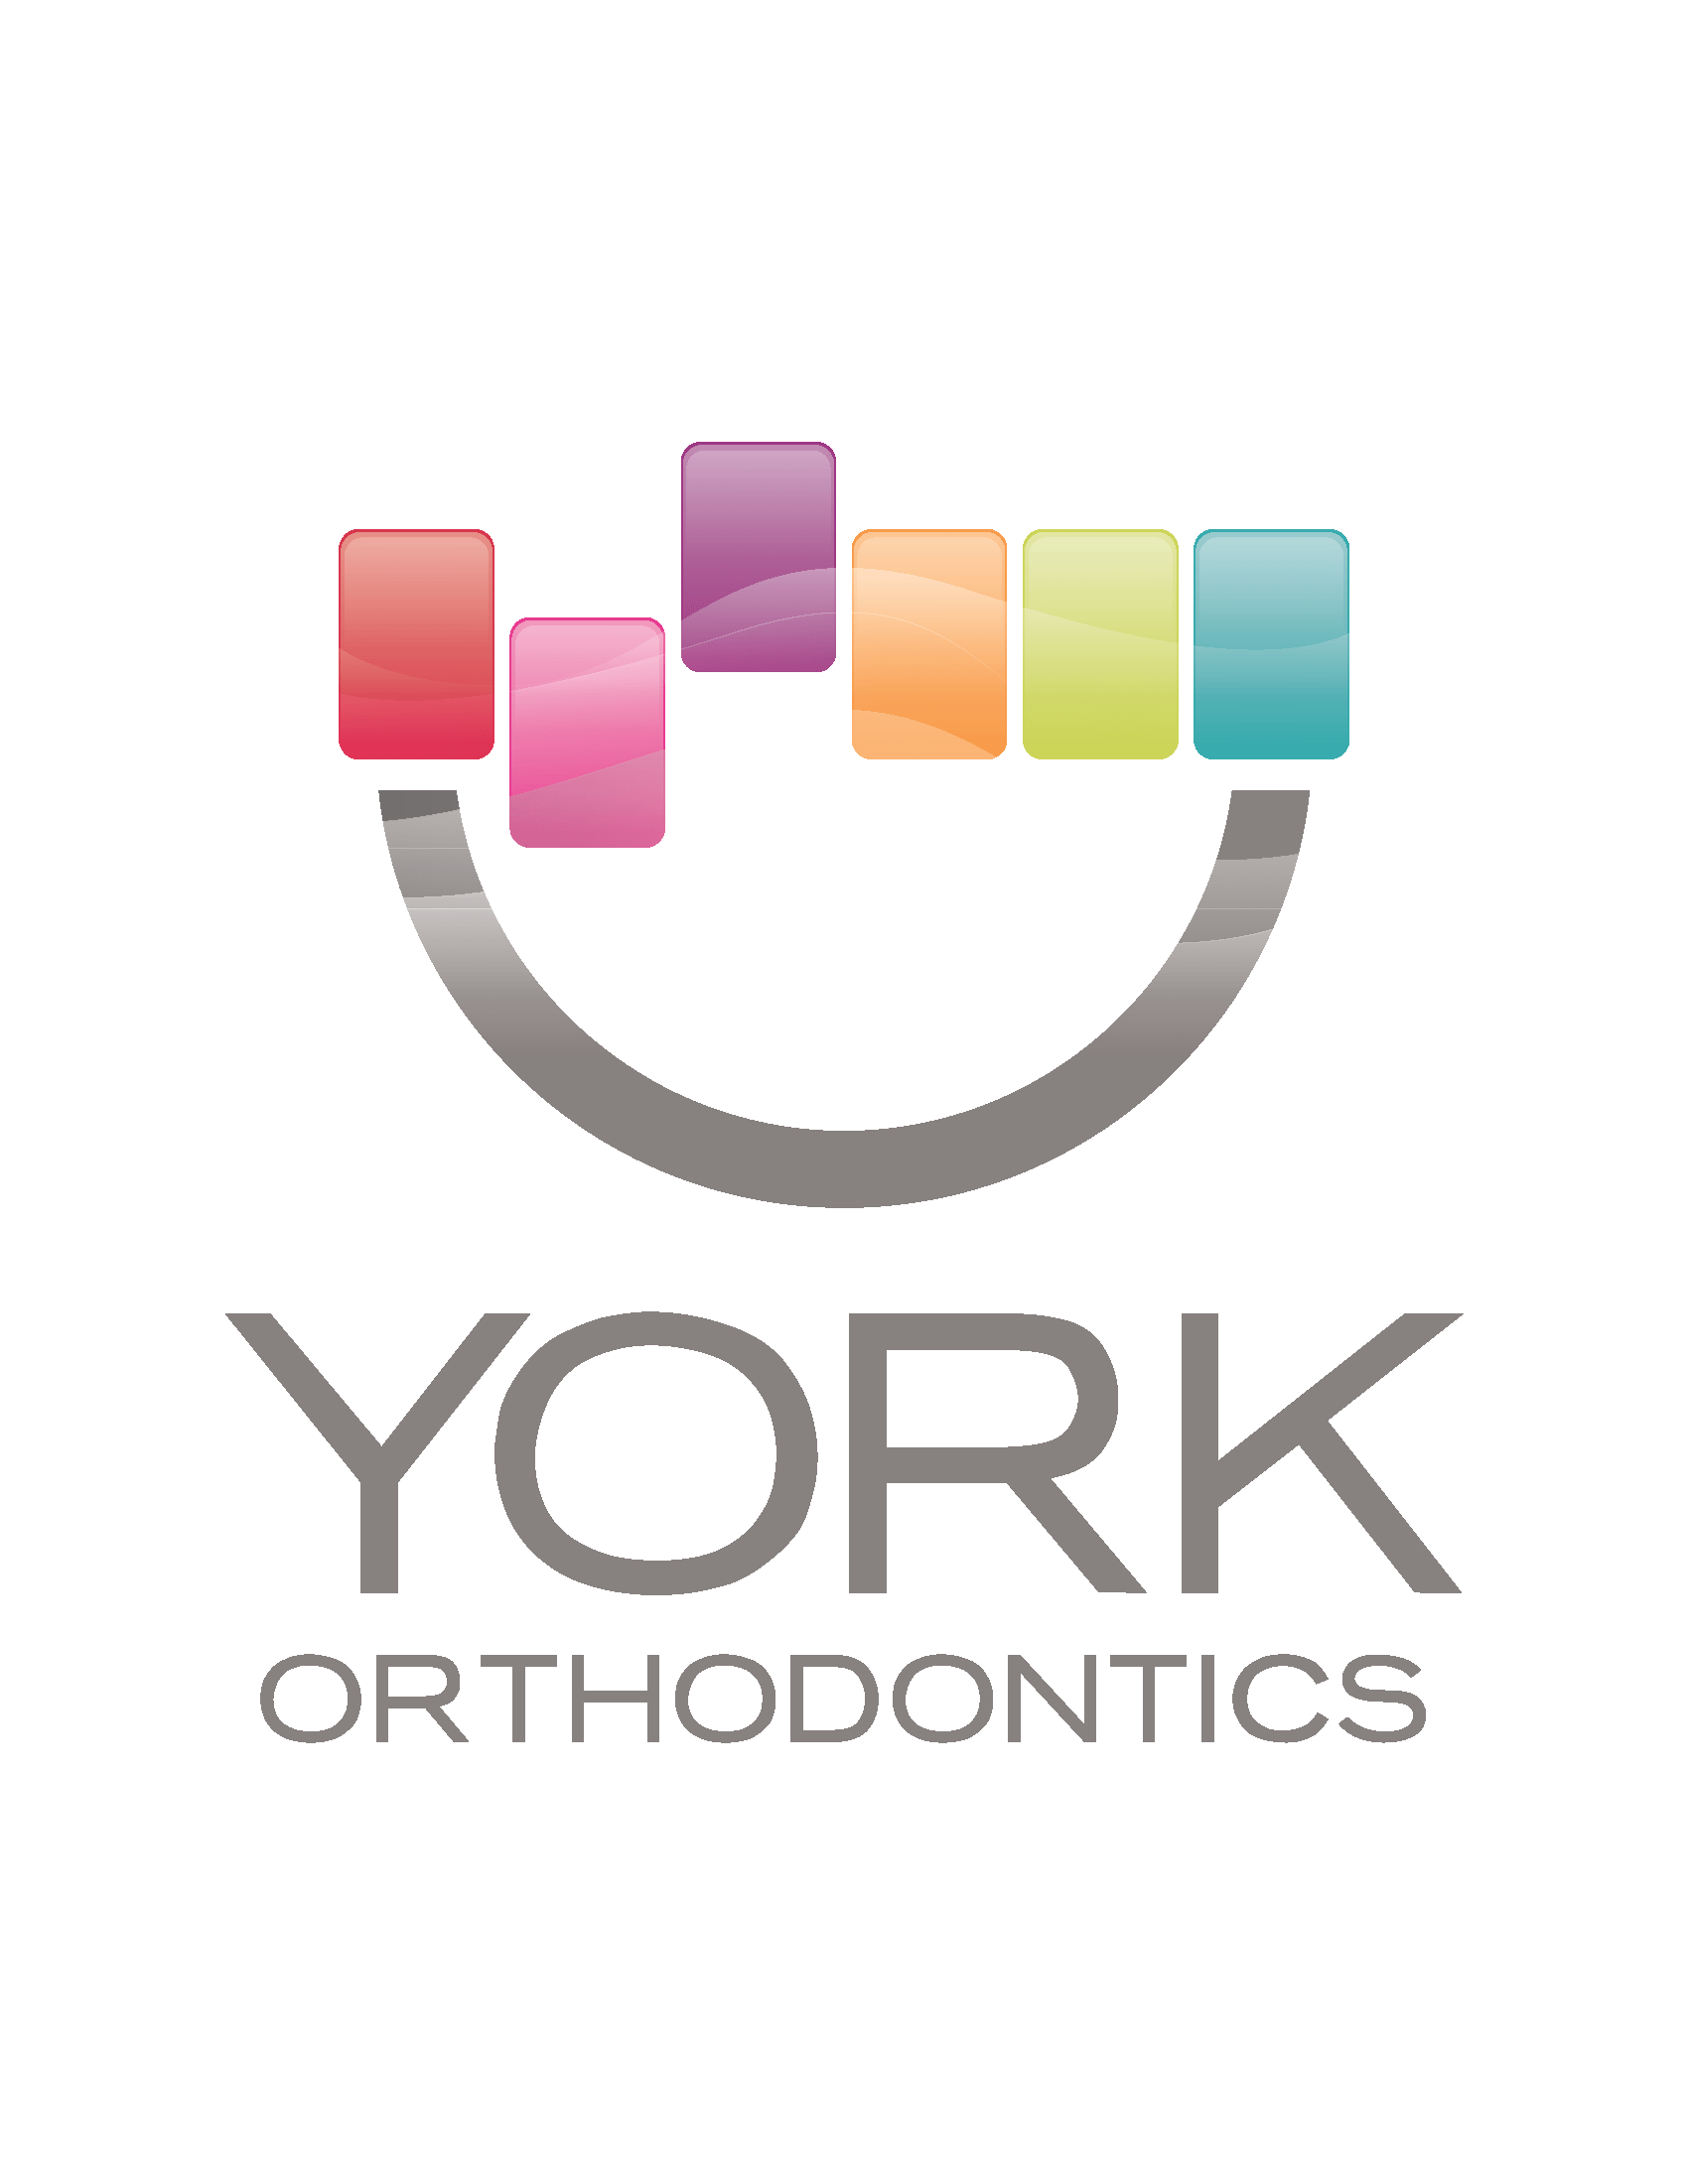 York Orthodontics